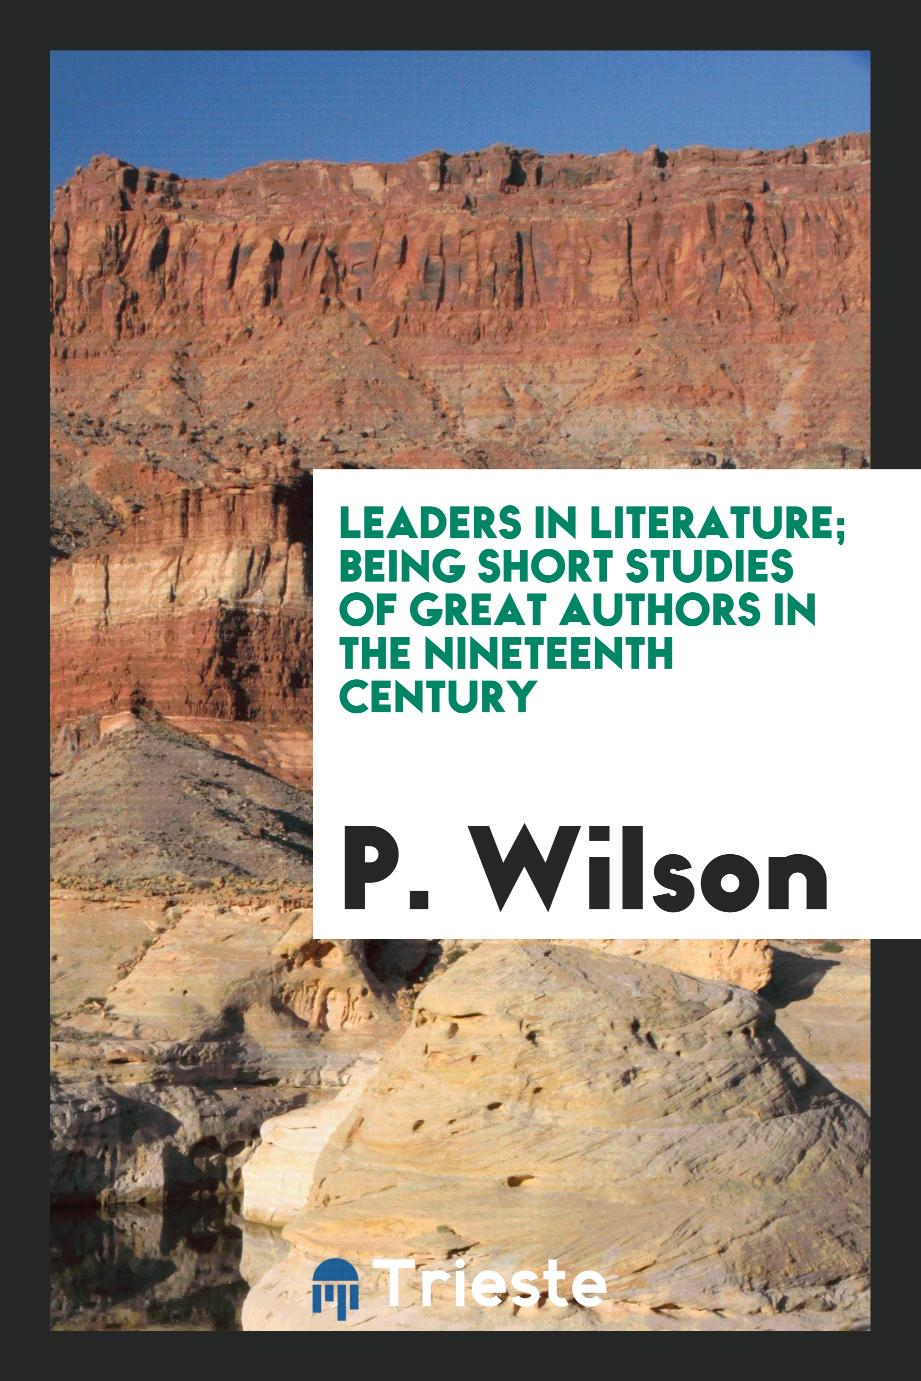 P. Wilson - Leaders in literature; being short studies of great authors in the nineteenth century